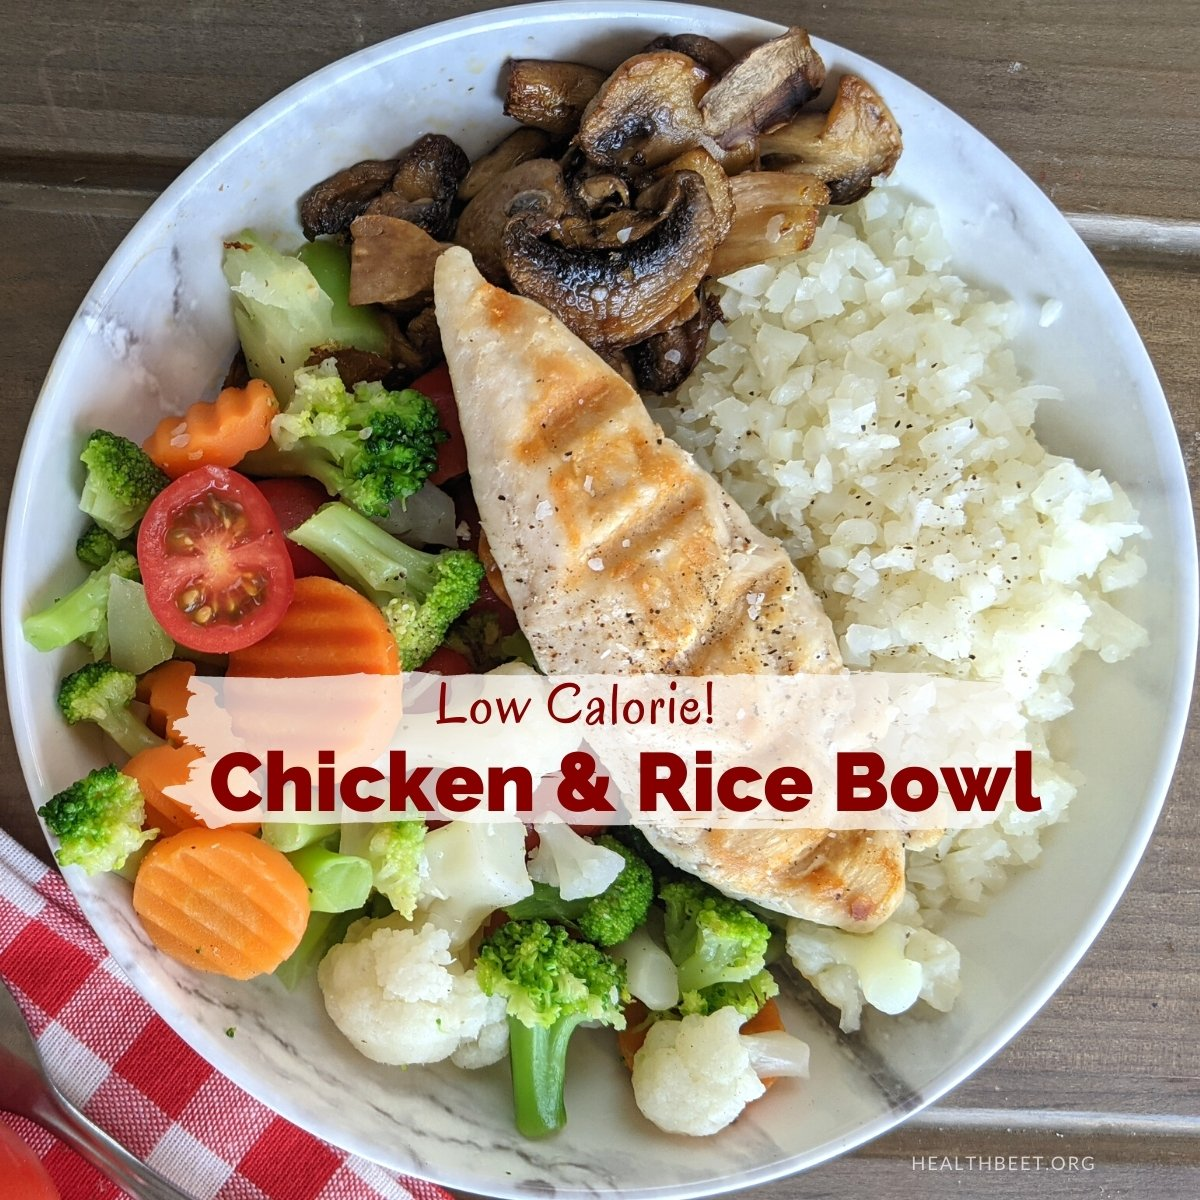 Low calorie chicken and cauliflower rice bowl